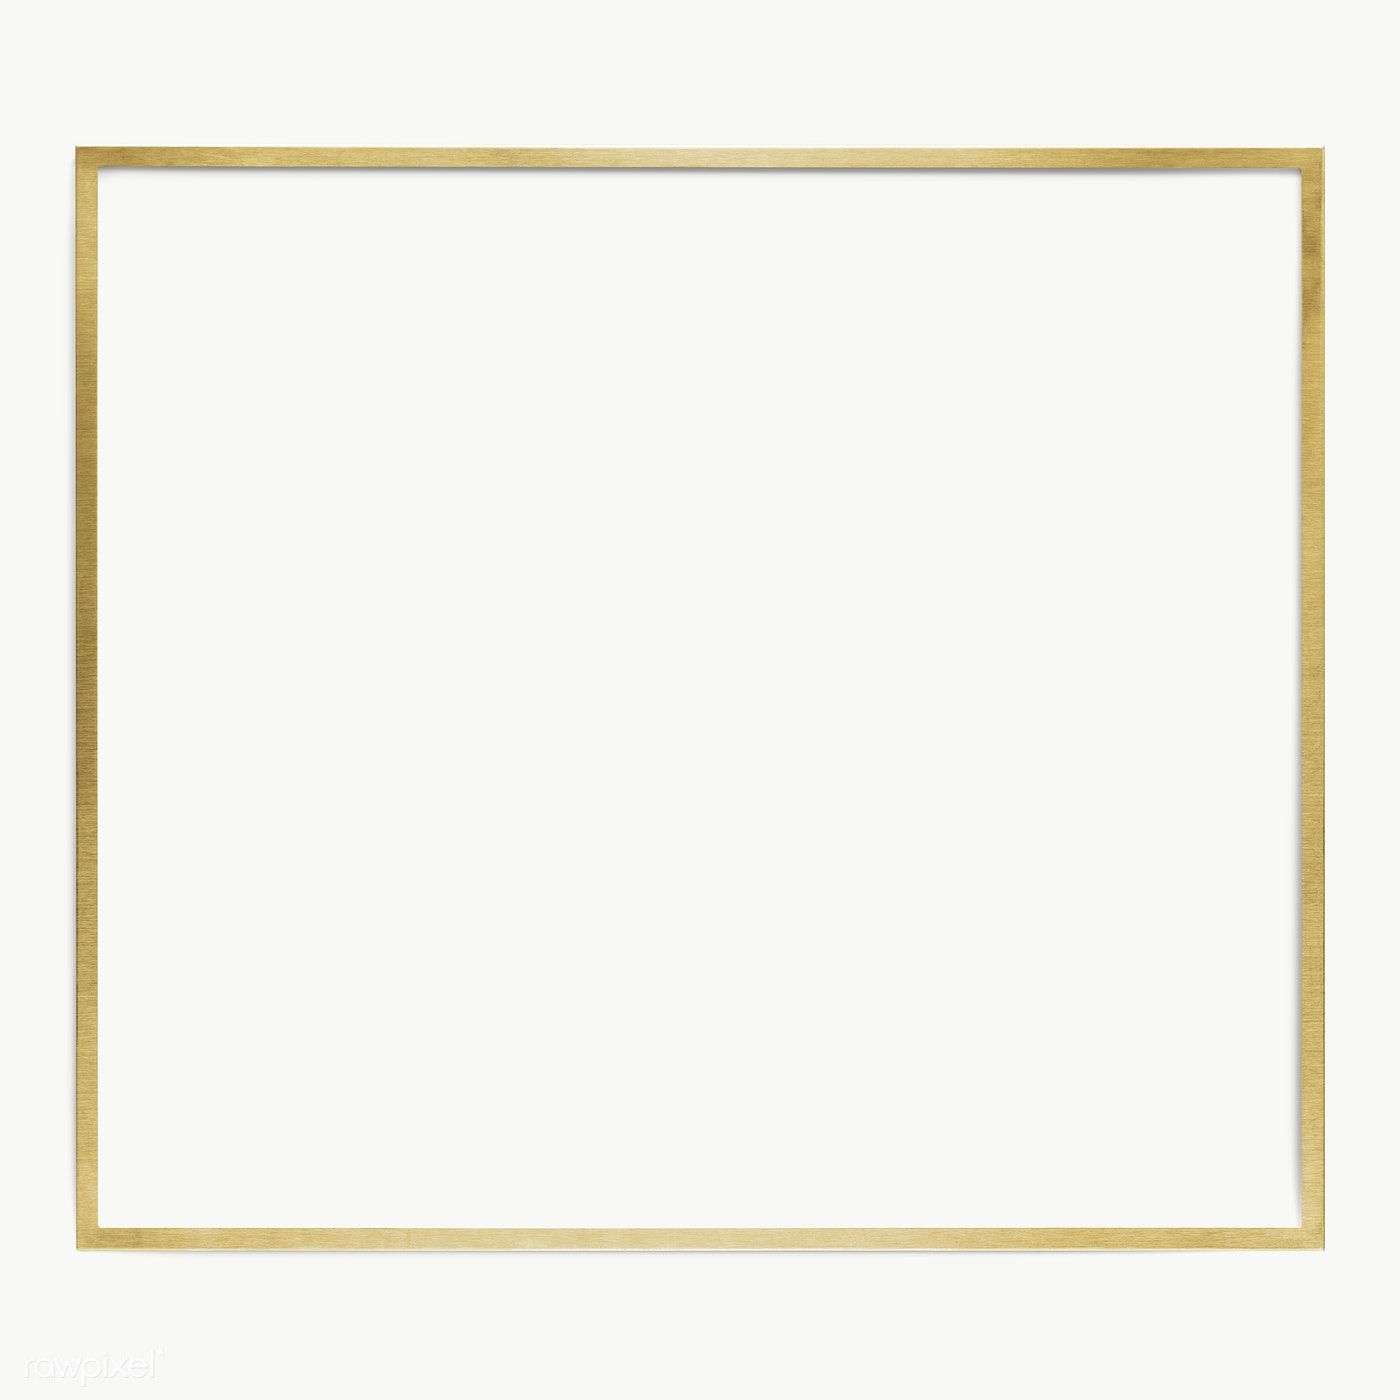 Download Premium Png Of Gold Square Frame Design Element 2349894 Frame Design Frame Square Frames